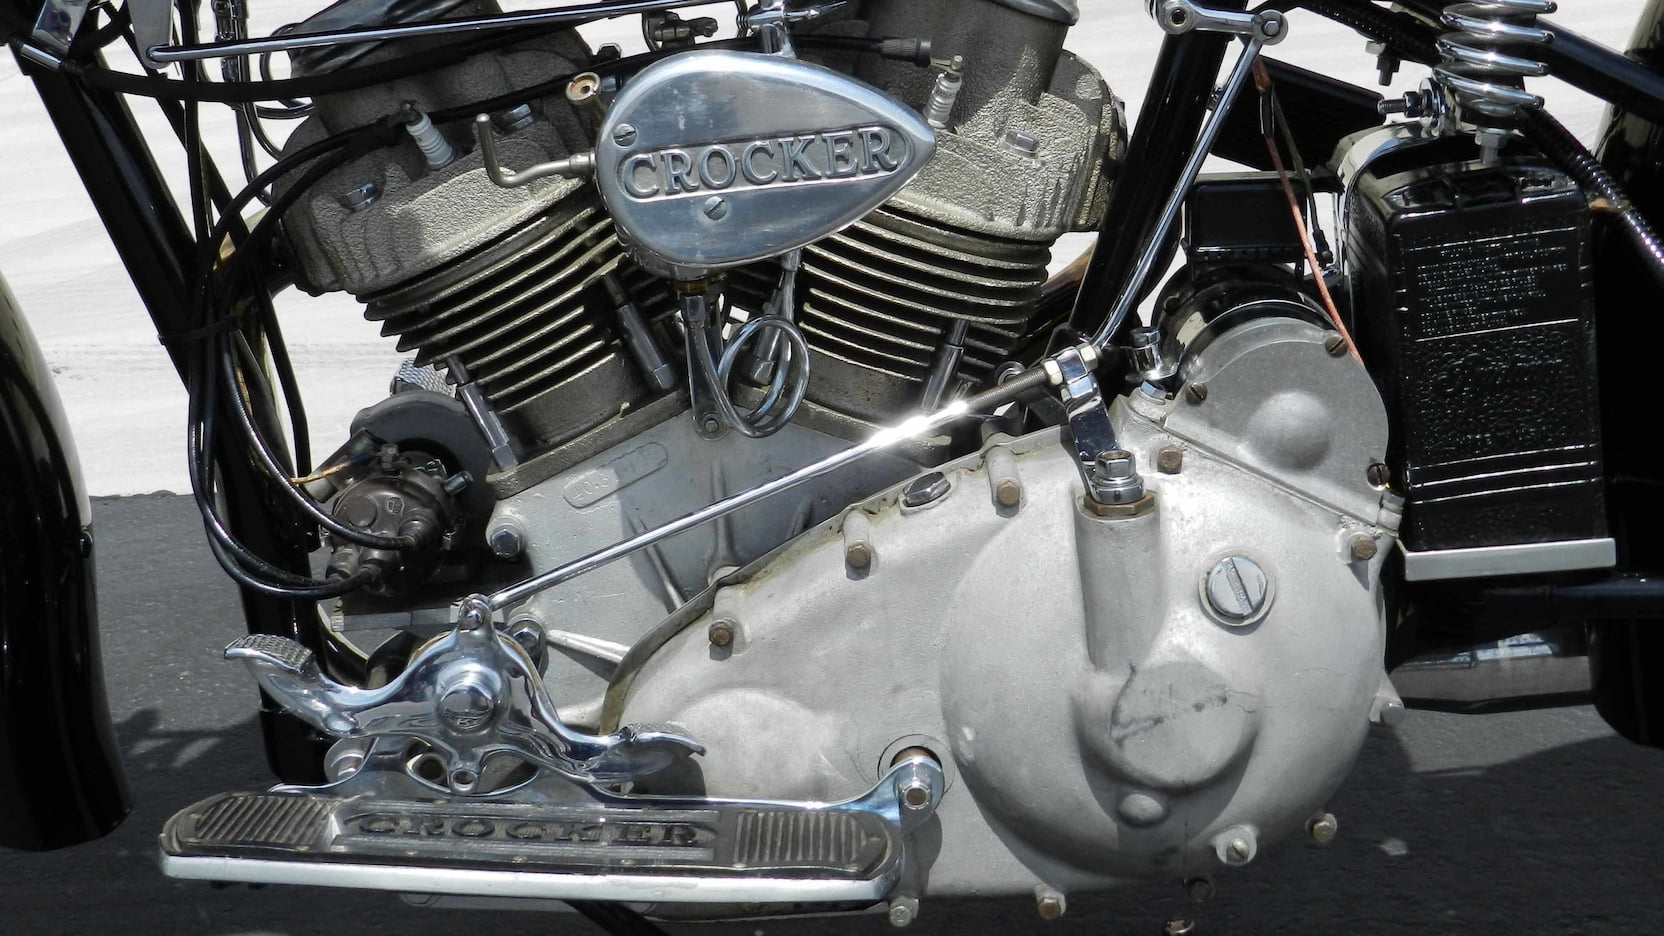 1940 Crocker 'Big Tank' Big Twin engine